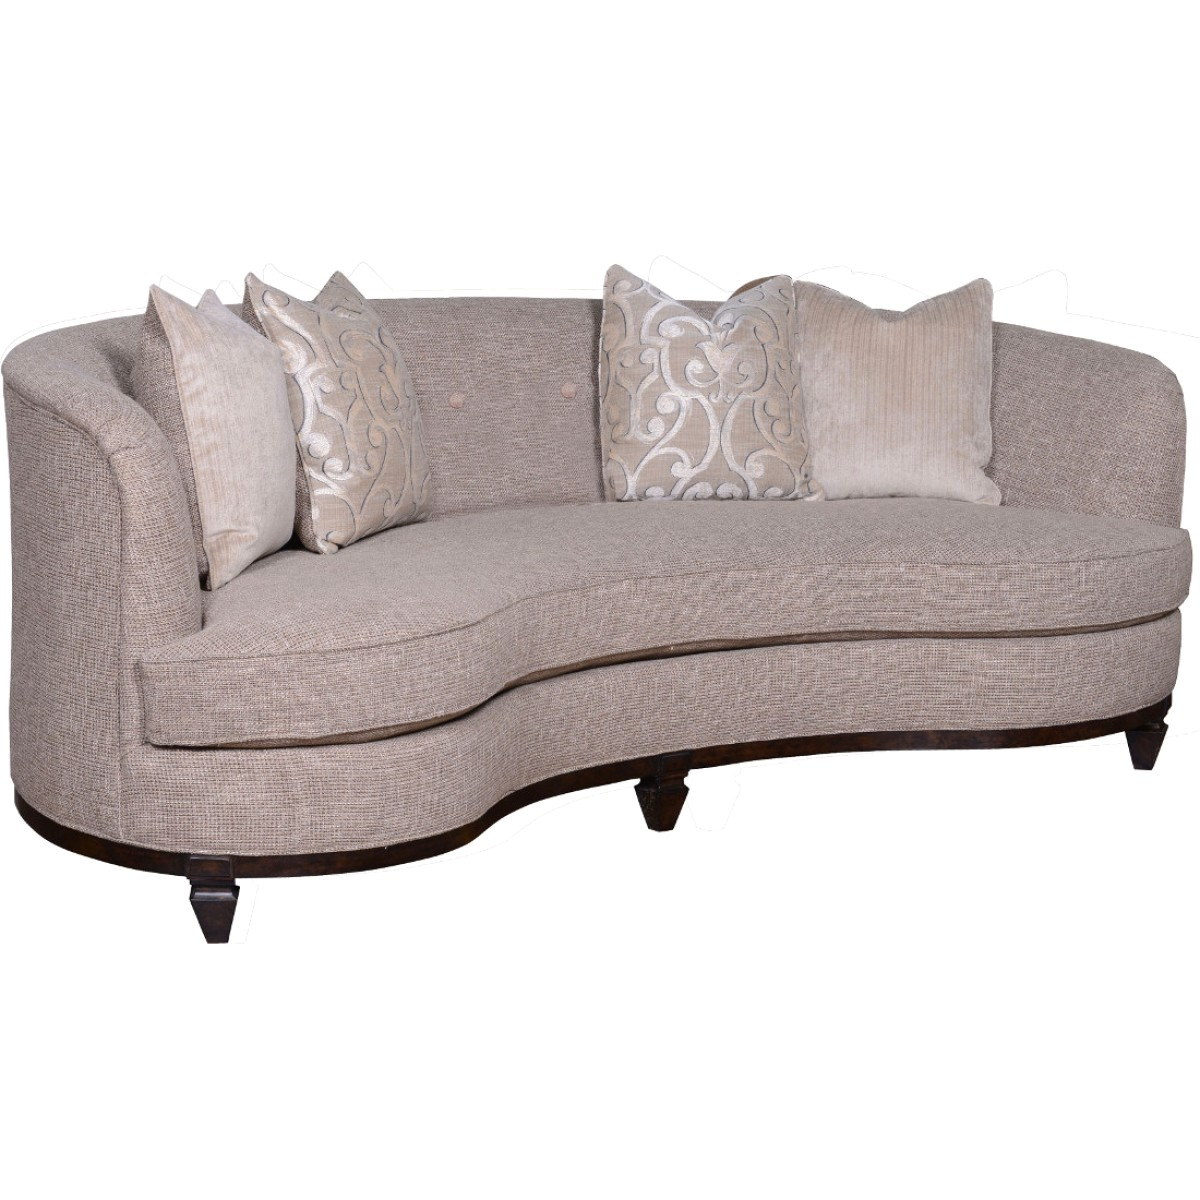 Blair fawn transitional 84 inch long kidney shaped sofa w for Sofa 84 inch